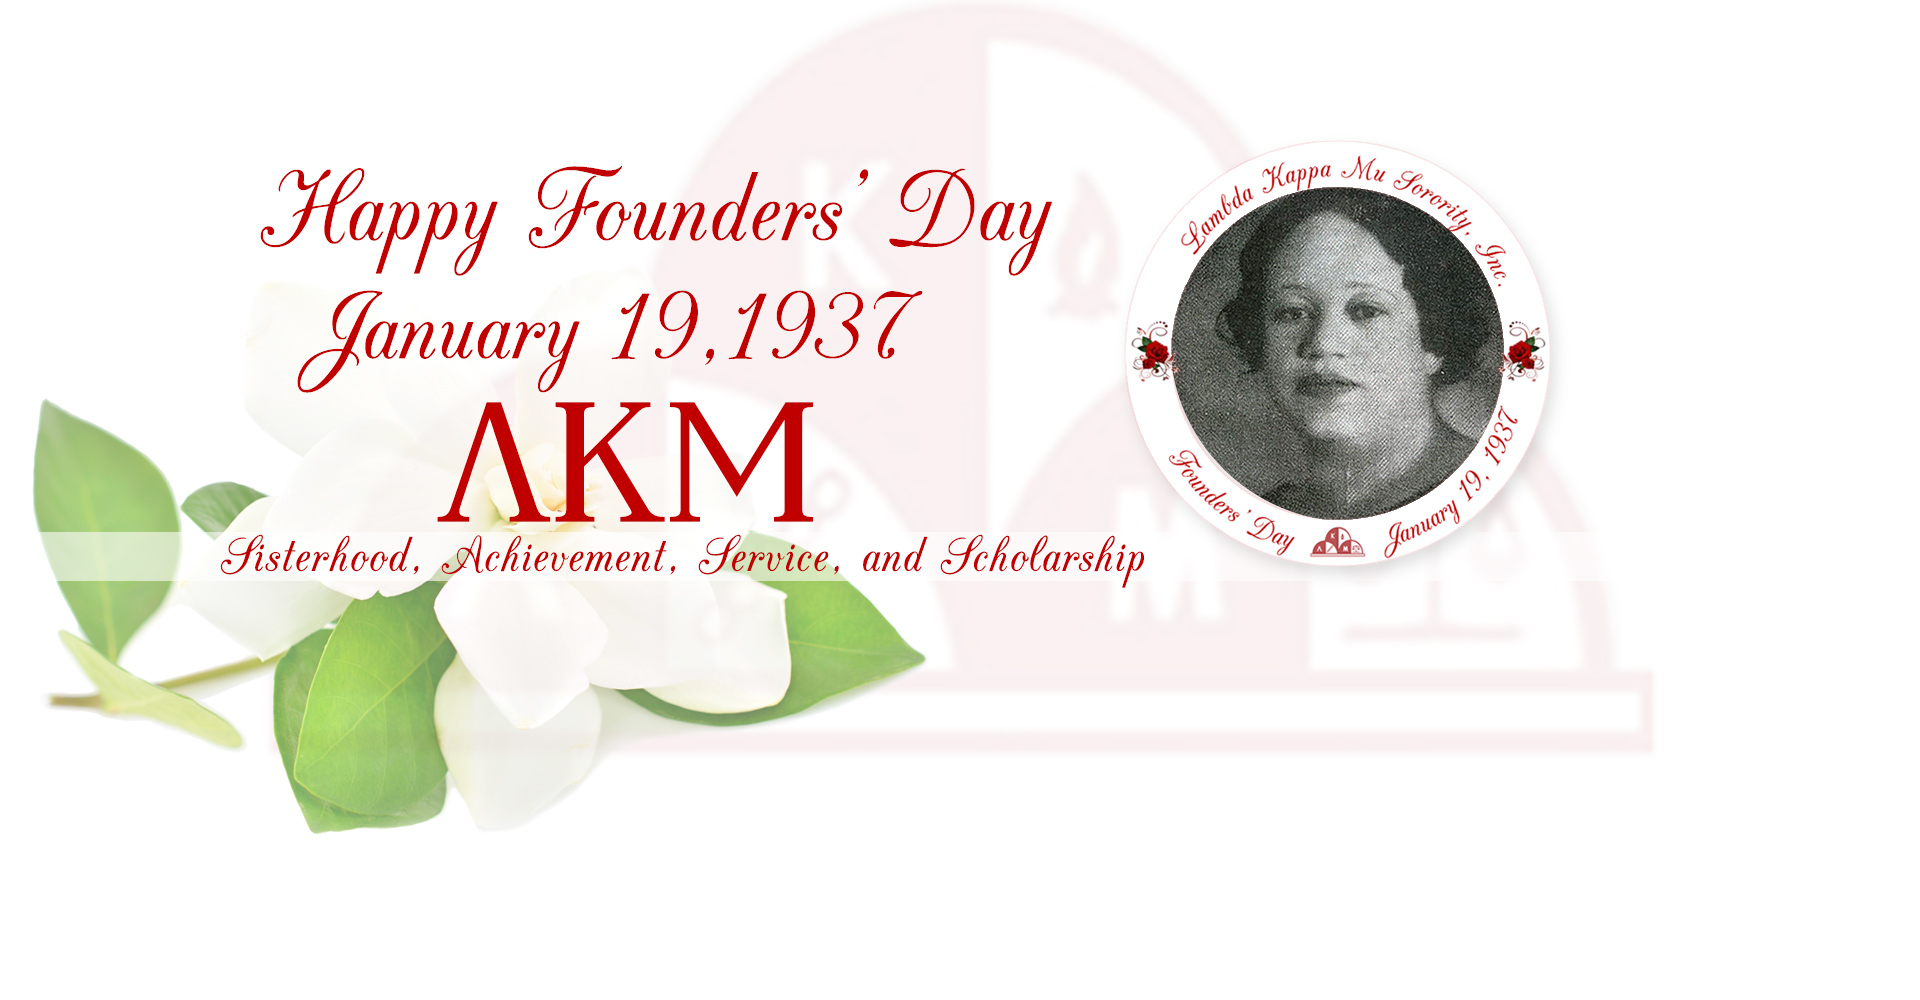 Happy Founders' Day